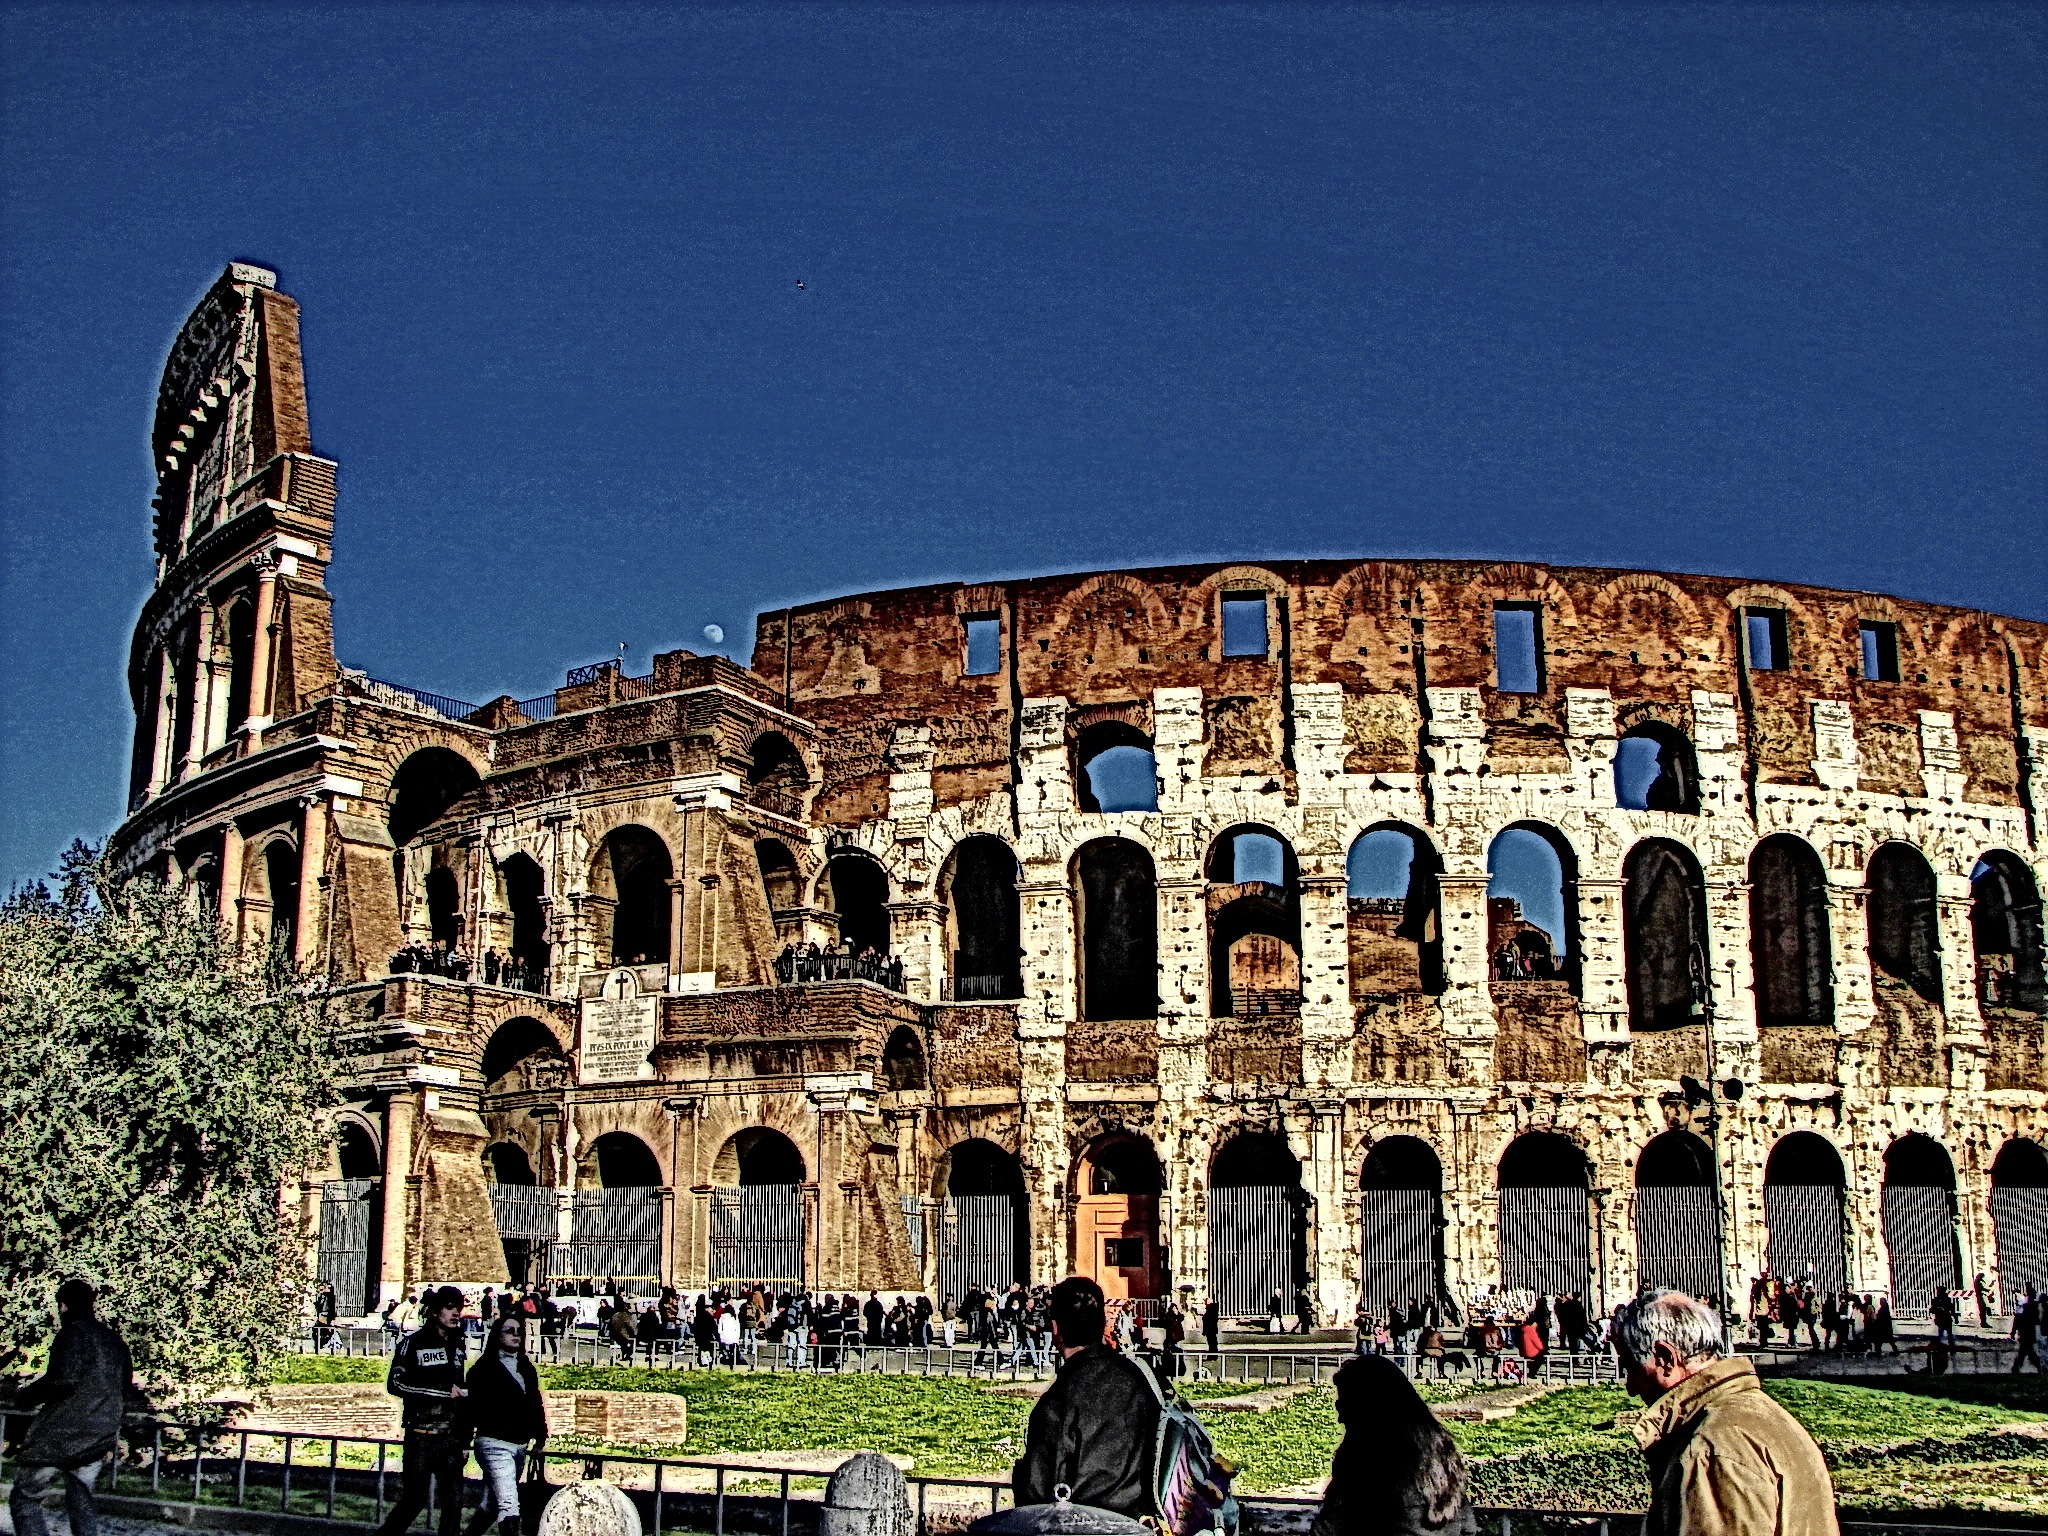 Il Colloseo by Hector Lopez